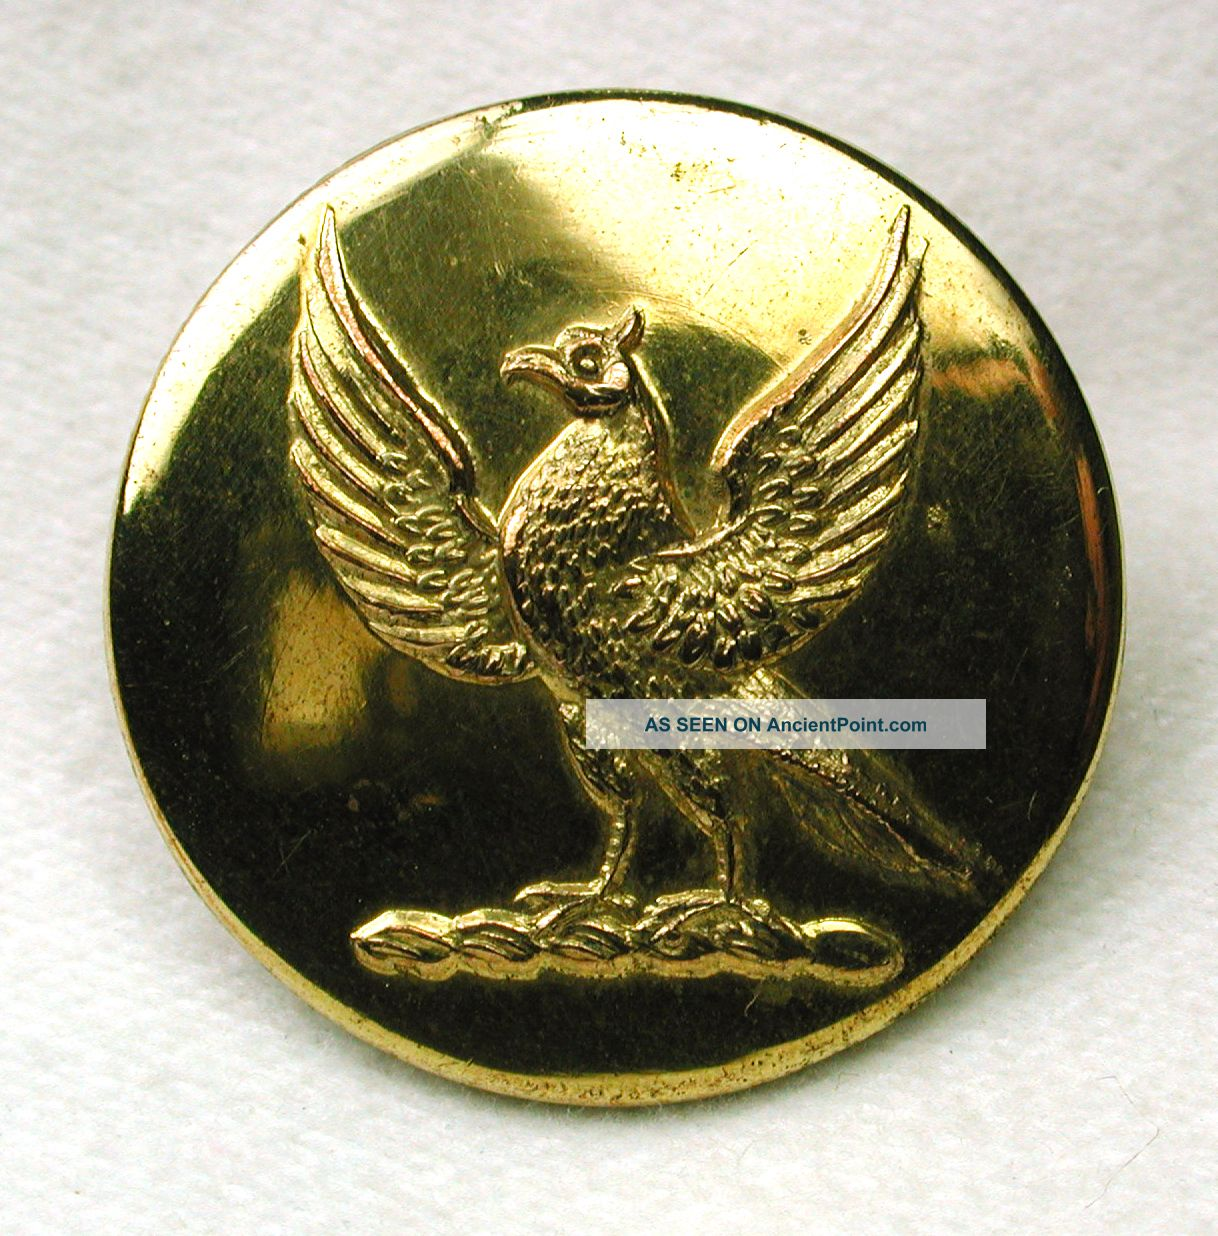 Antique Brass Crest Livery Button Bird With Wings Spread Buttons photo